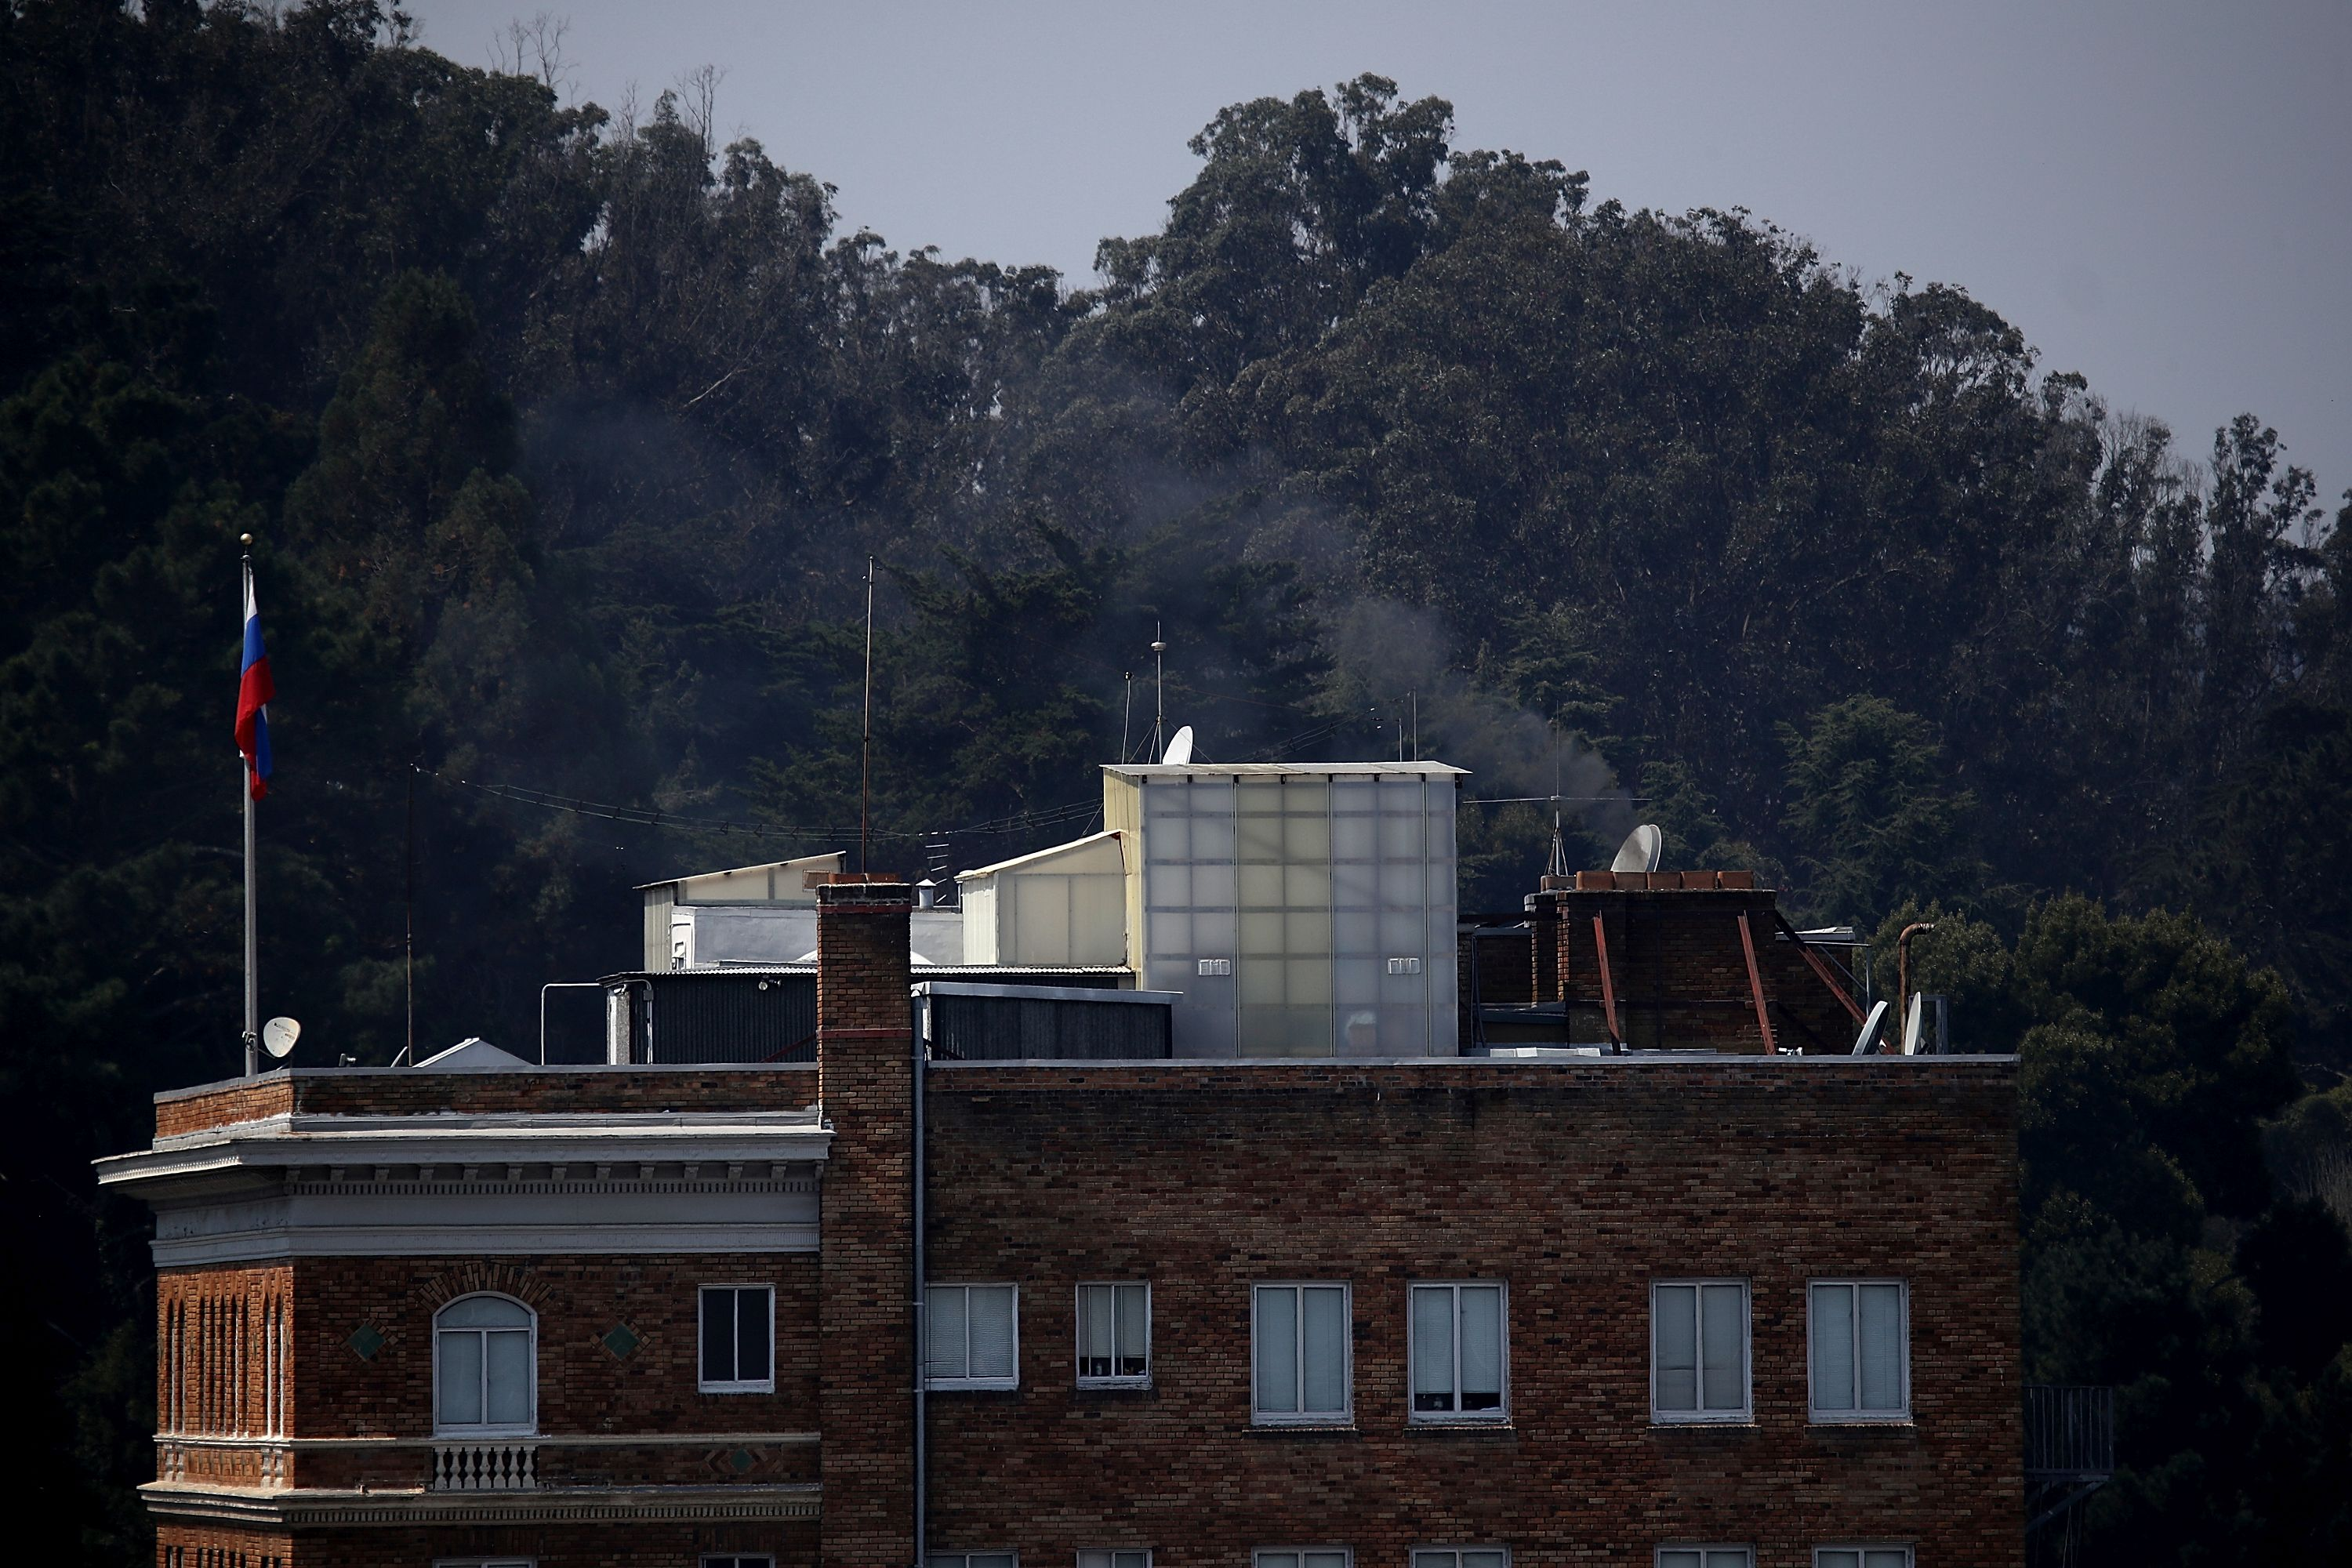 SAN FRANCISCO, CA - SEPTEMBER 01:  Black smoke billows from a chimney on top of the Russian consulate on September 1, 2017 in San Francisco, California. In response to a Russian government demand for the United States to cut its diplomatic staff in Russia by 455, the Trump administration ordered the closure of three consular offices in the San Francisco, New York and Washington.  (Photo by Justin Sullivan/Getty Images)